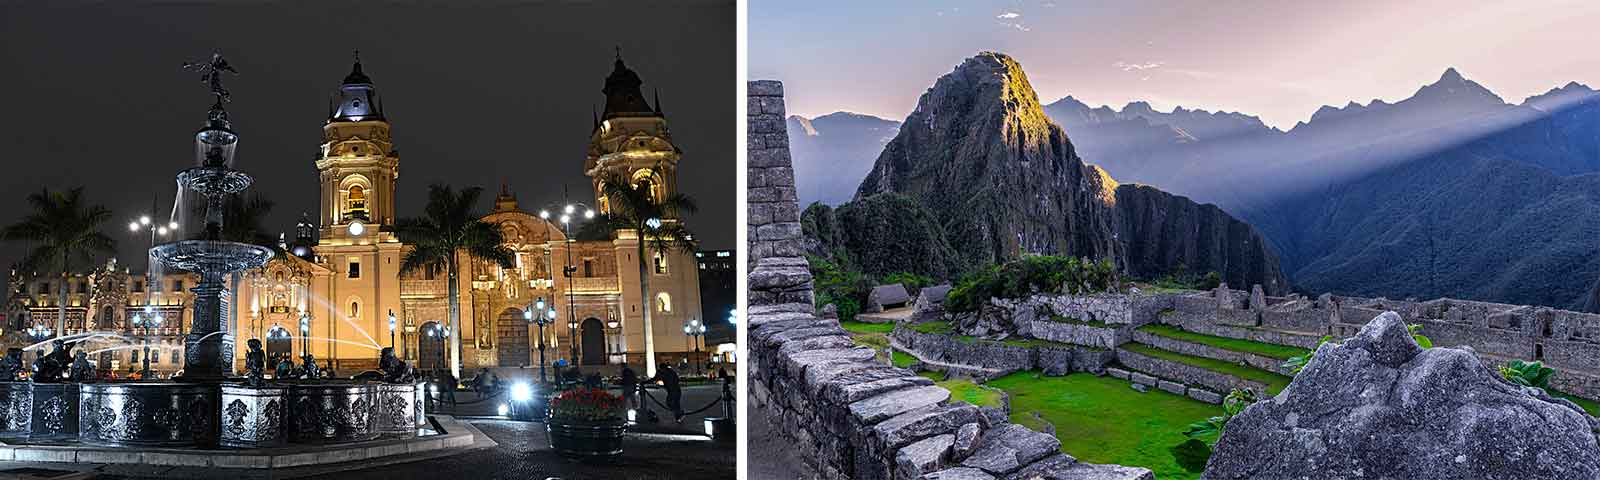 PERÚ ESCAPE LIMA Y CUSCO